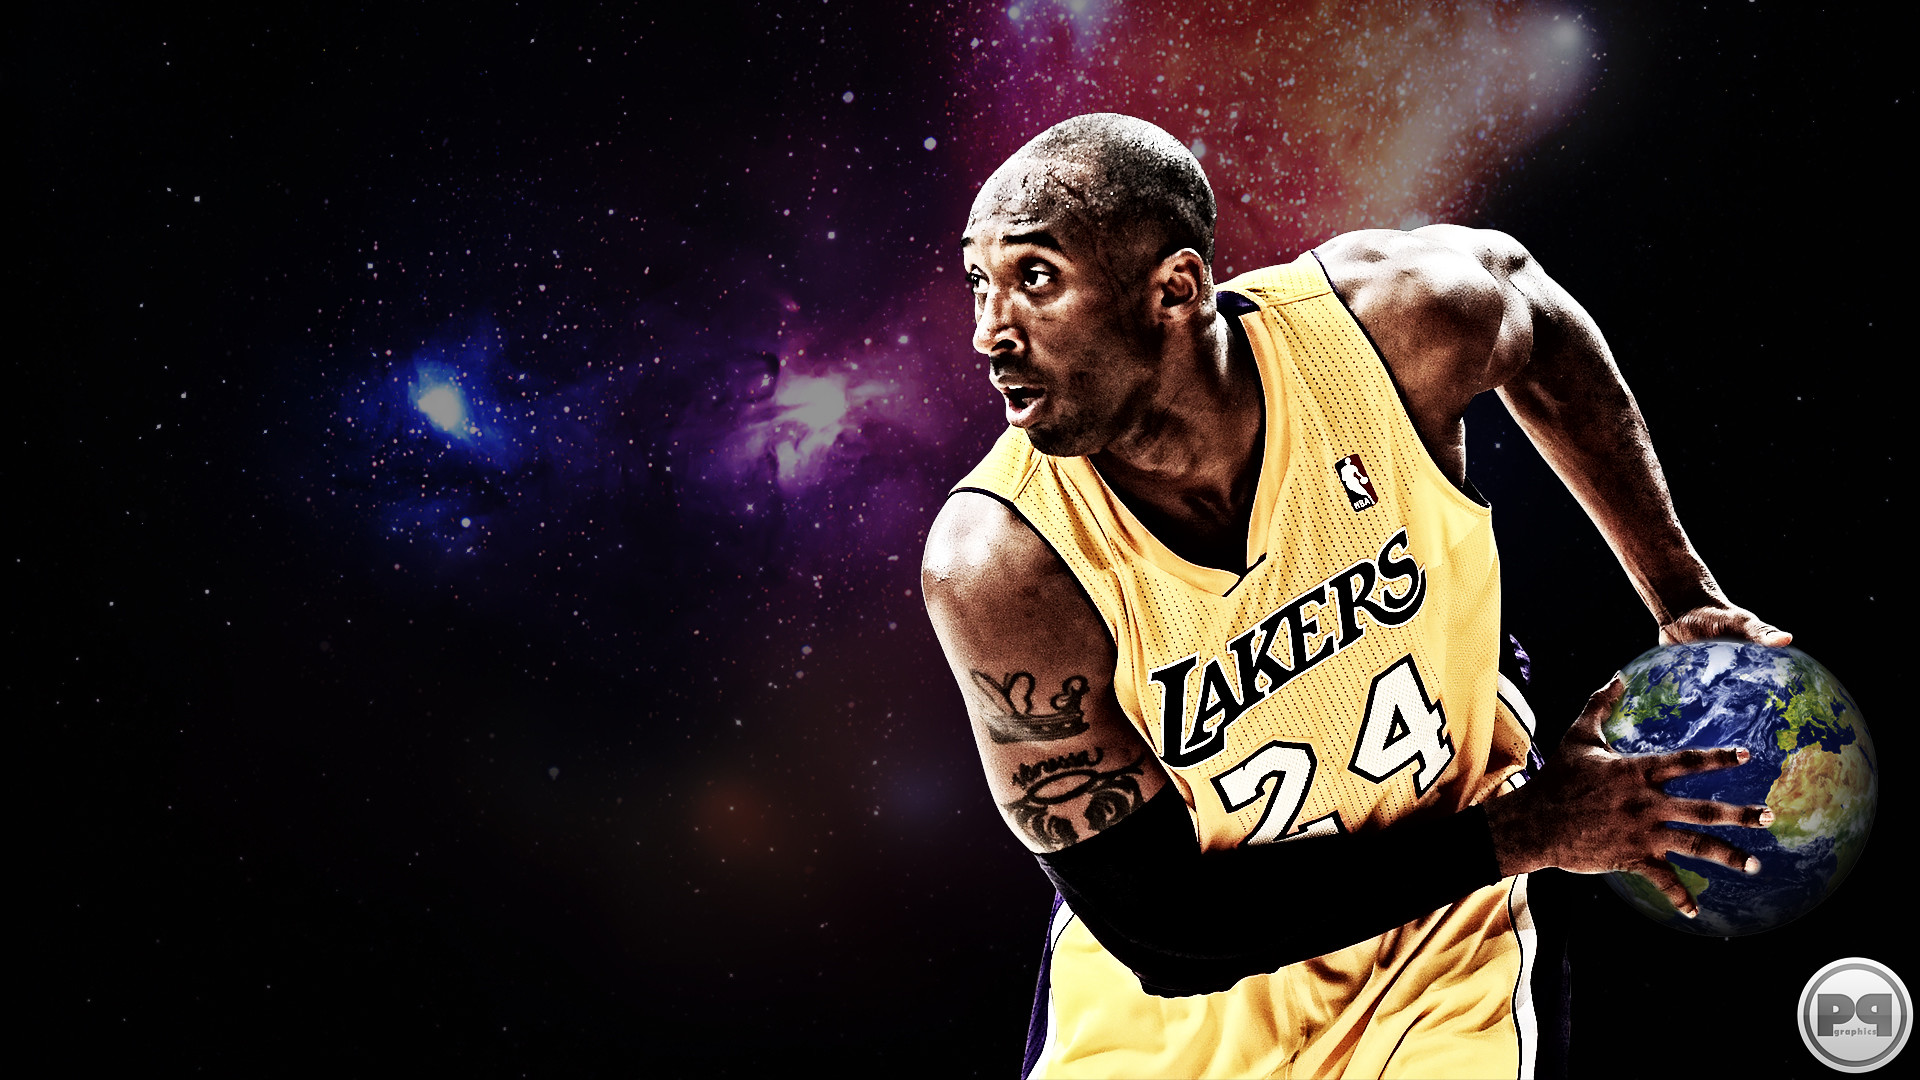 Lakers Championship Wallpaper 81 Pictures